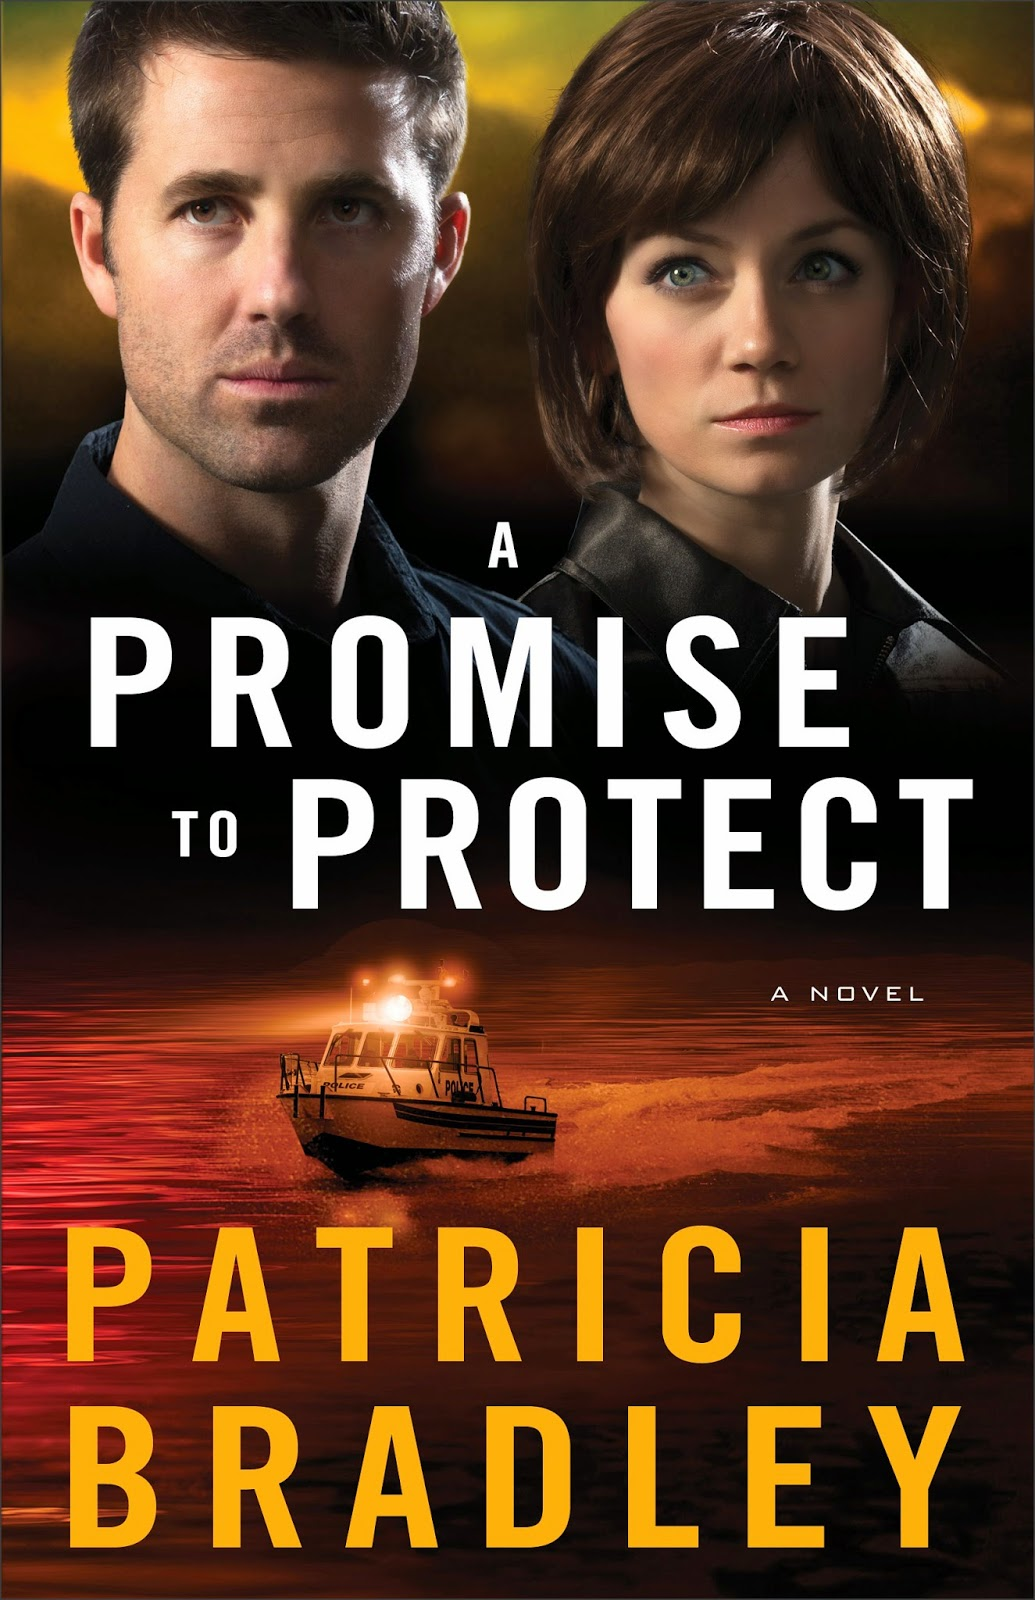 Review - A Promise To Protect